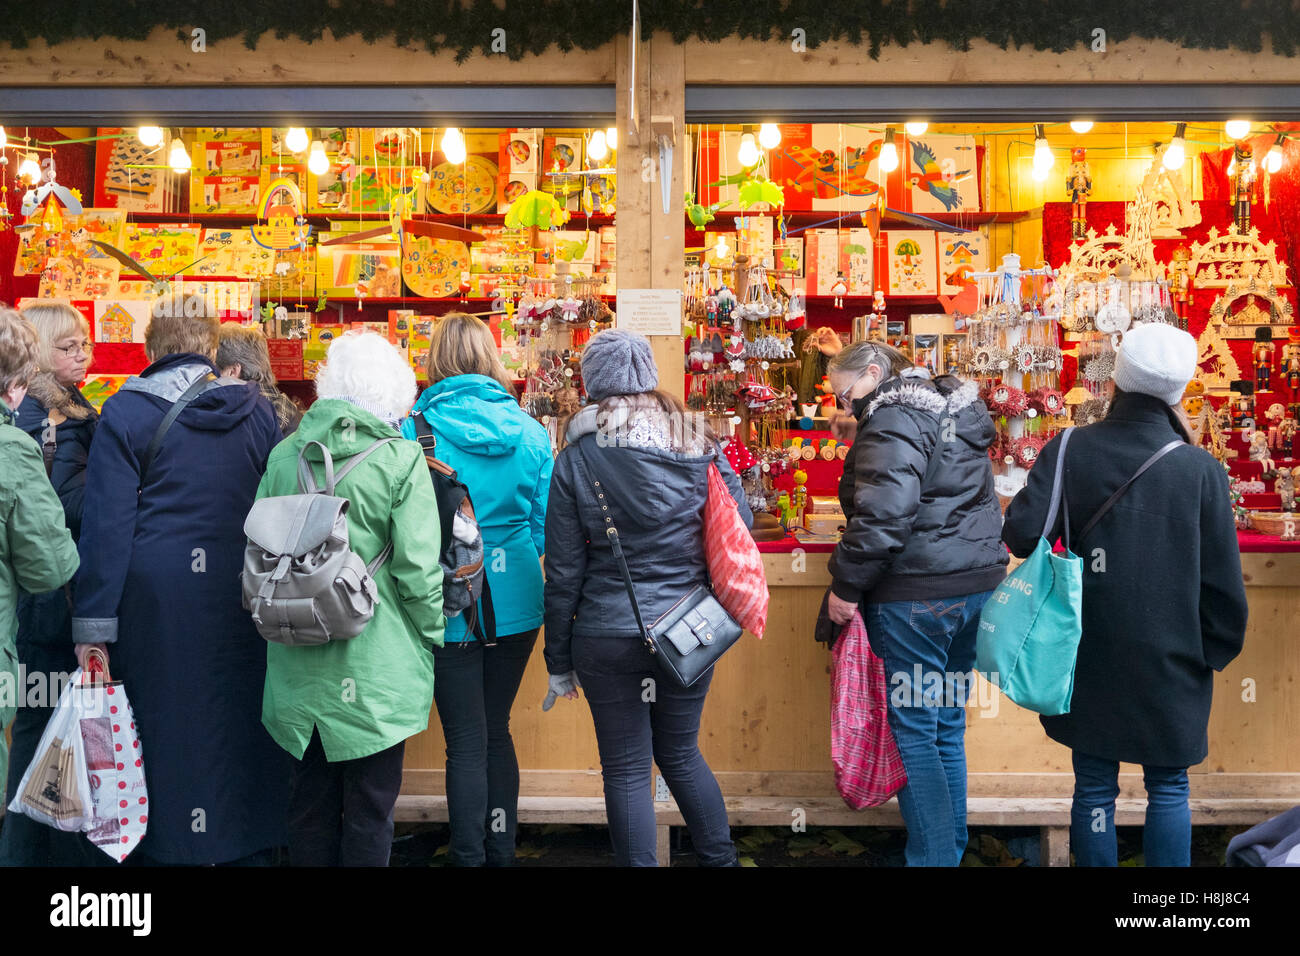 Temporary food stalls as part of the Christmas markets in Manchester City centre, UK. - Stock Image